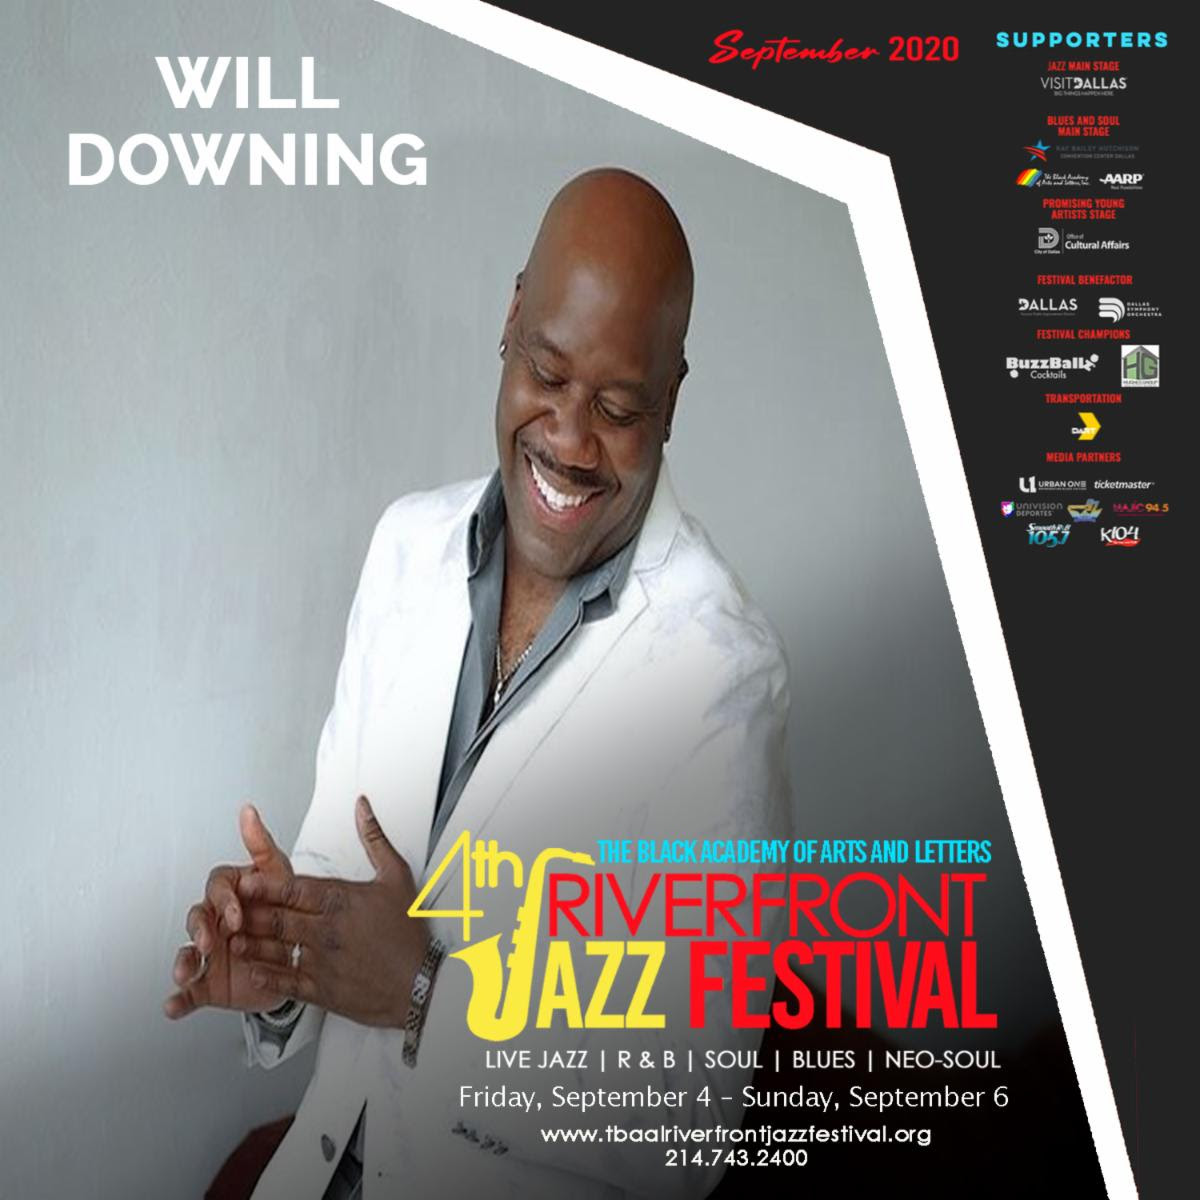 TBAAL's 4th Annual Riverfront Jazz Festival: 9/4-9/6/2020